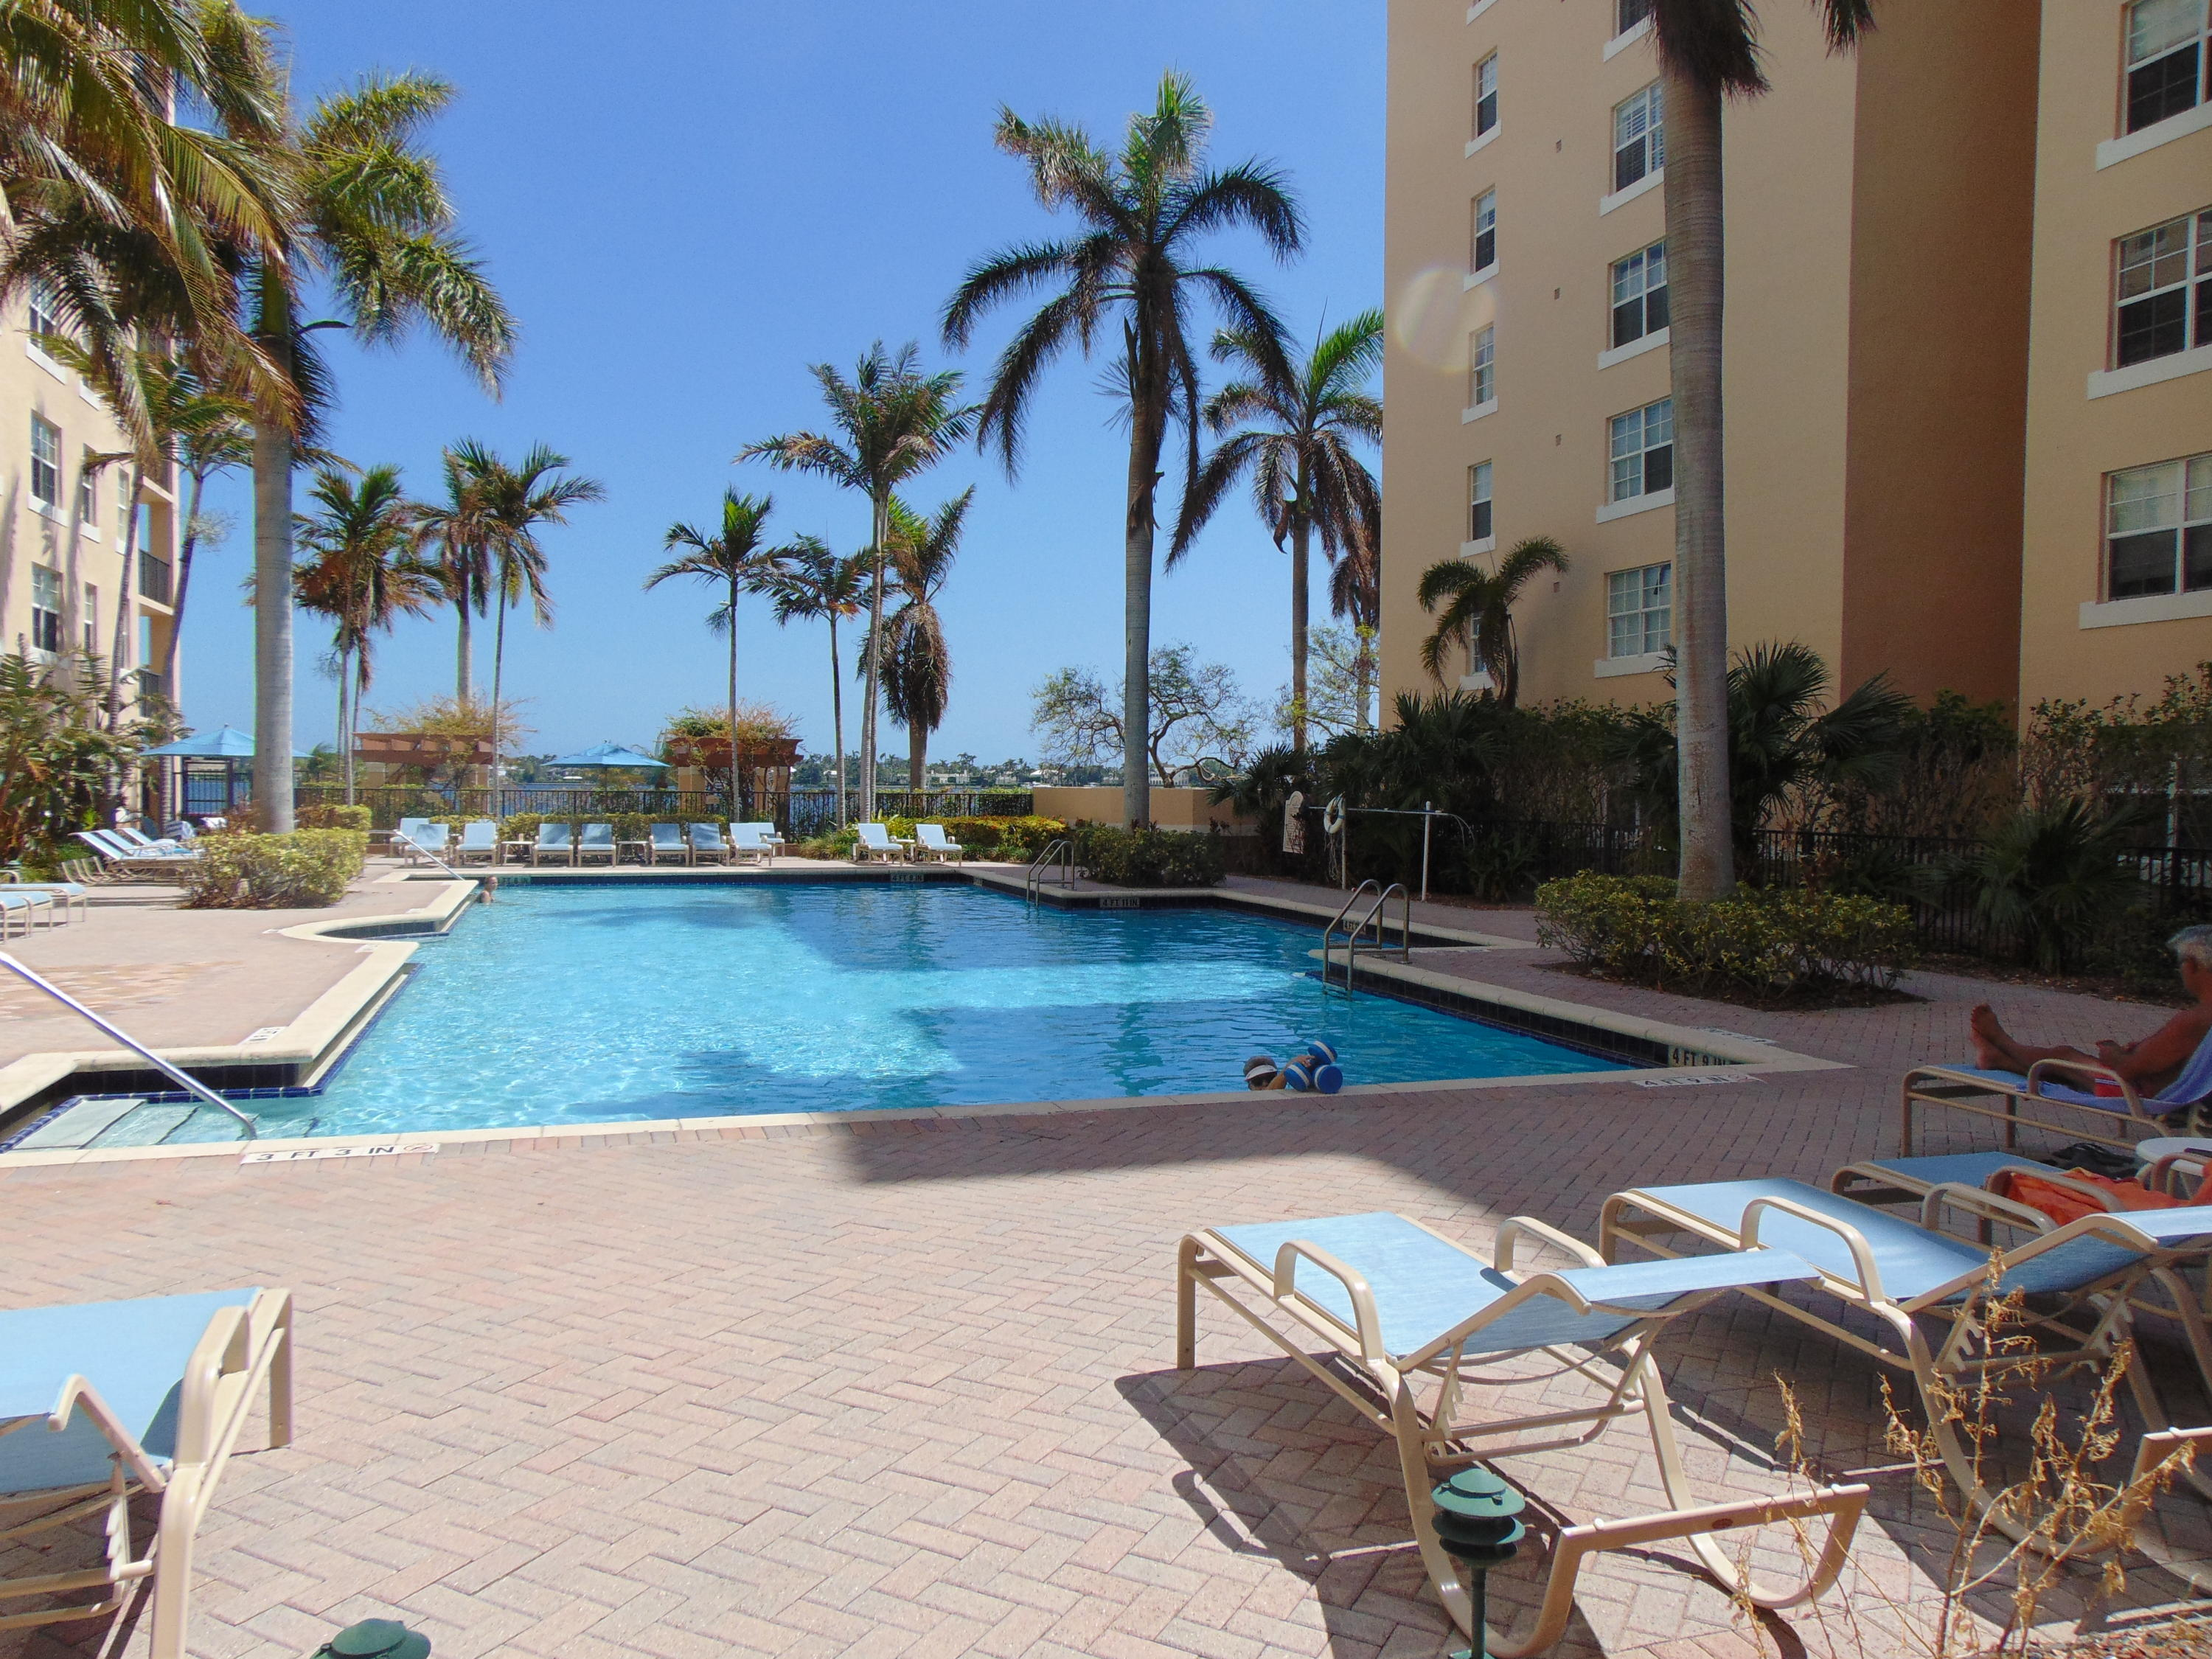 1801 Flagler Drive, West Palm Beach, Florida 33407, 1 Bedroom Bedrooms, ,1 BathroomBathrooms,Condo/Coop,For Sale,Flagler,4,RX-10367944